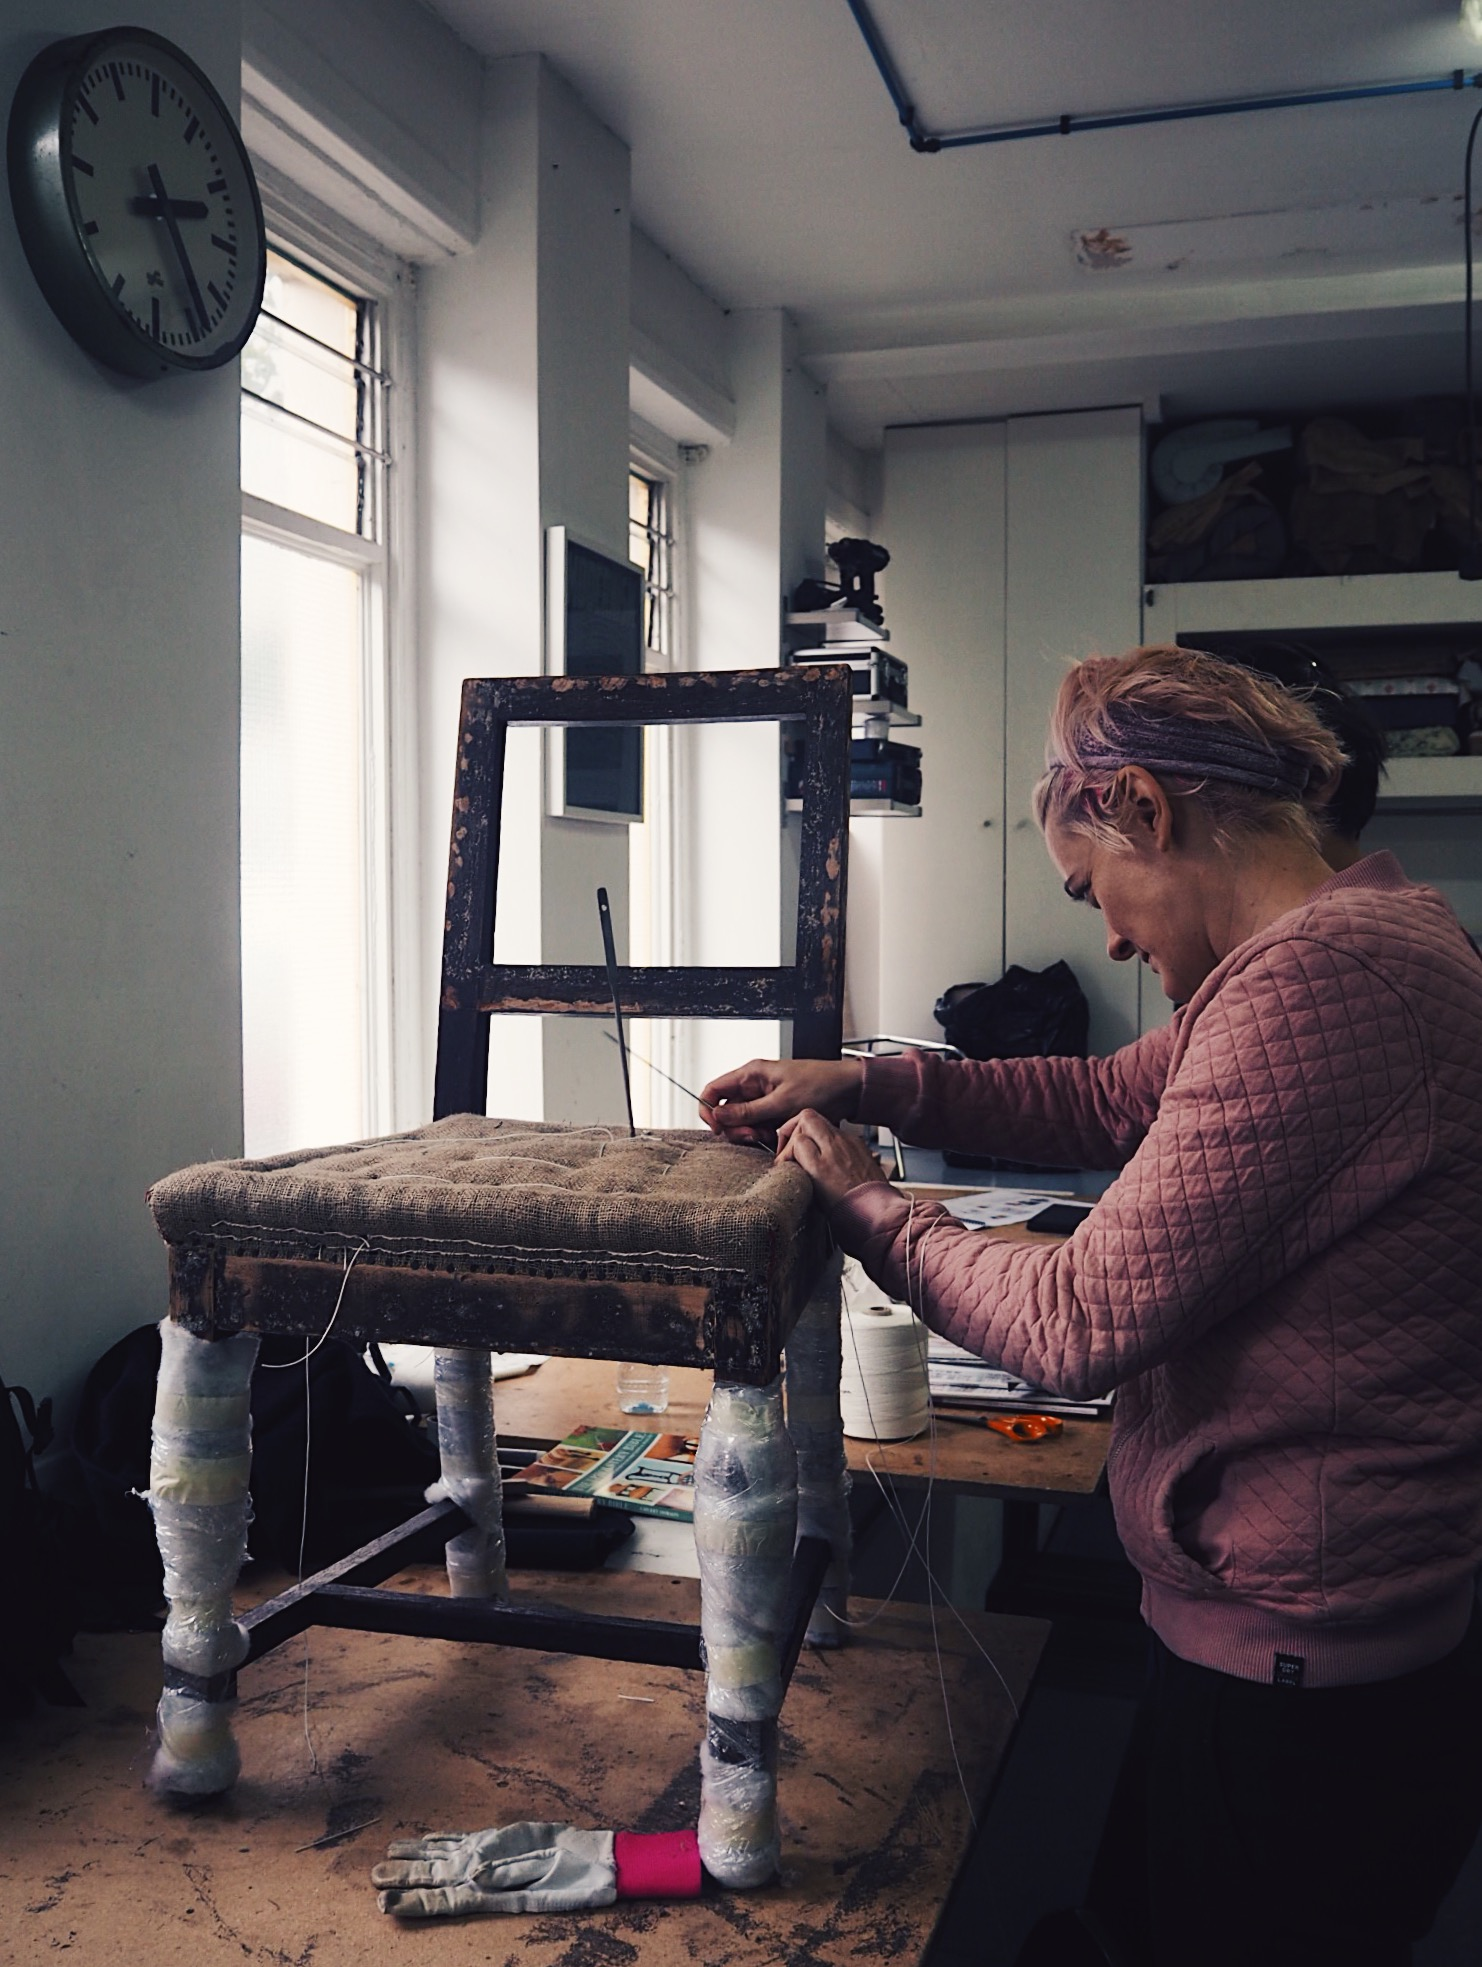 Shoreditch Design Rooms owner and teacher Louise Boyland, demonstrating to a student part of the upholstery process.